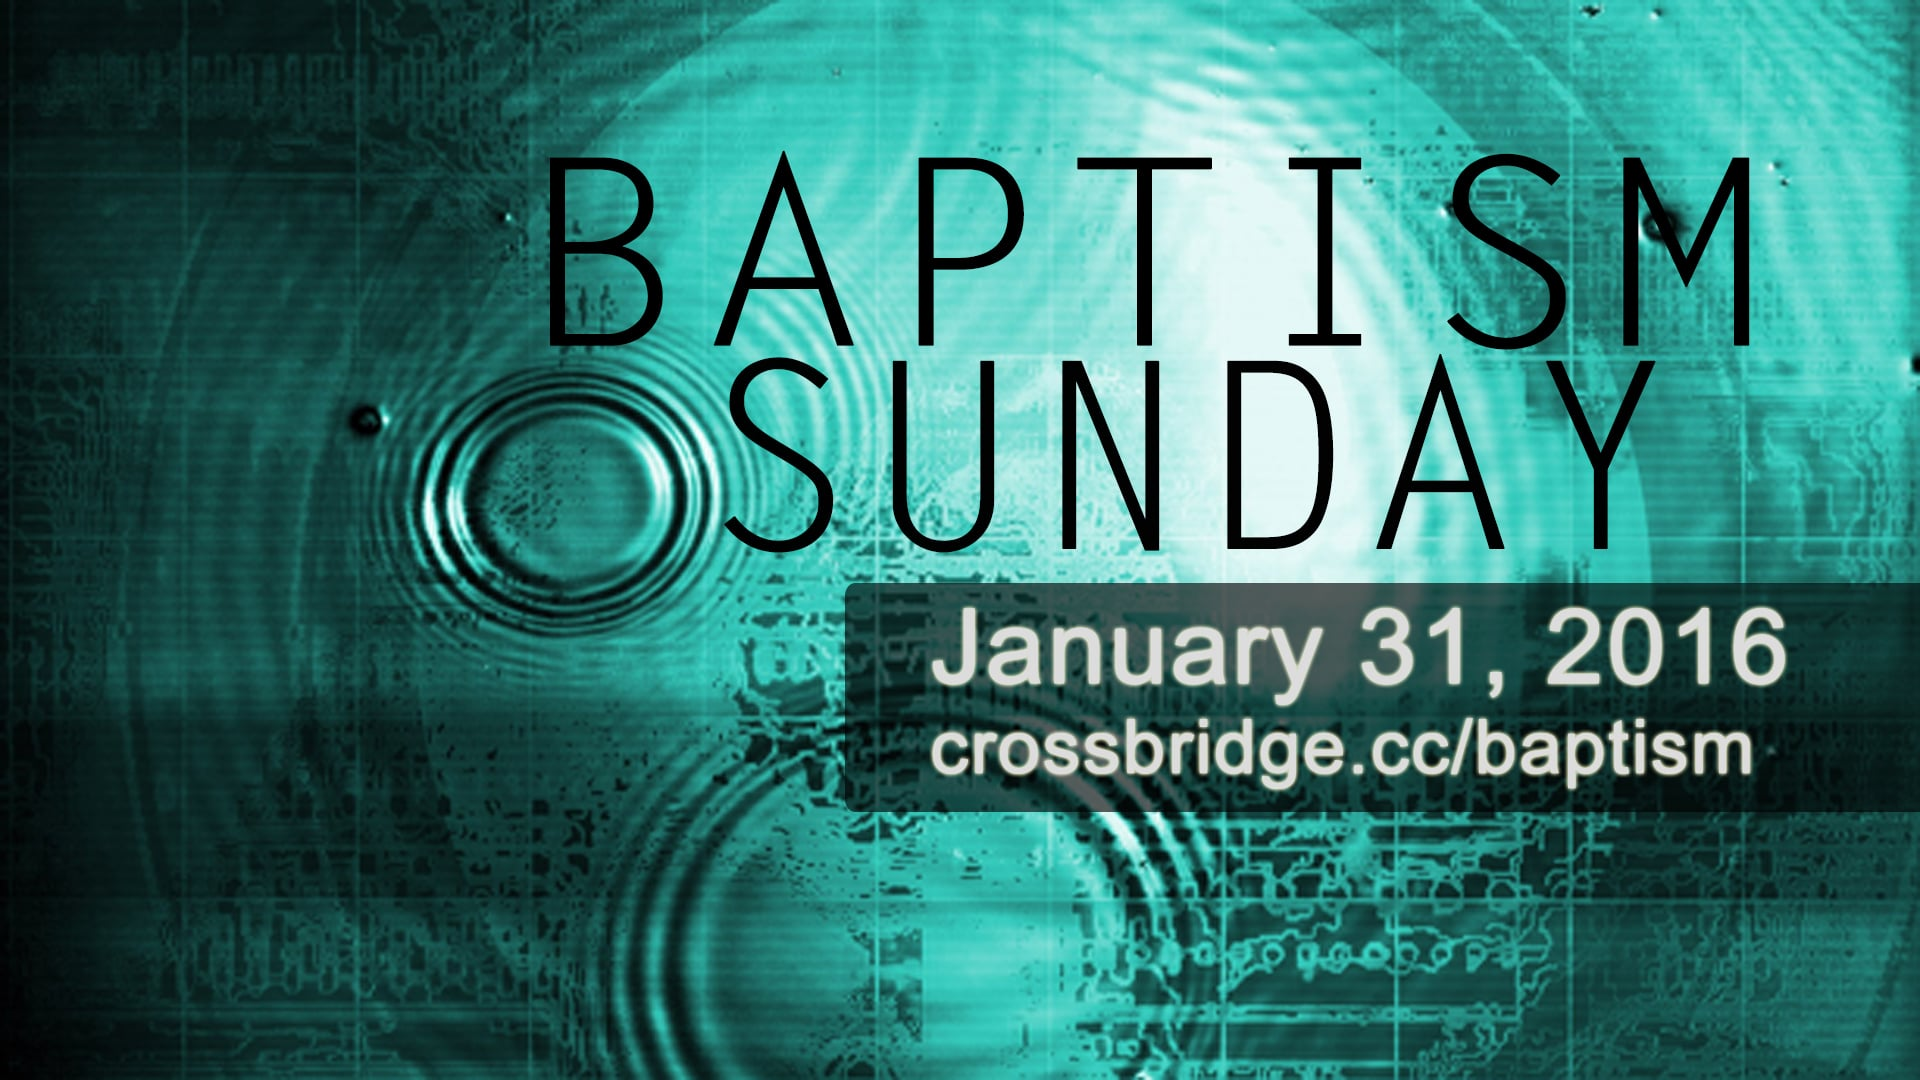 BAPTISM SUNDAY - January 31, 2016     Take your next step in following Jesus by going public with your faith through Baptism! Email  HERE  to receive a baptism packet with more information about this important step.